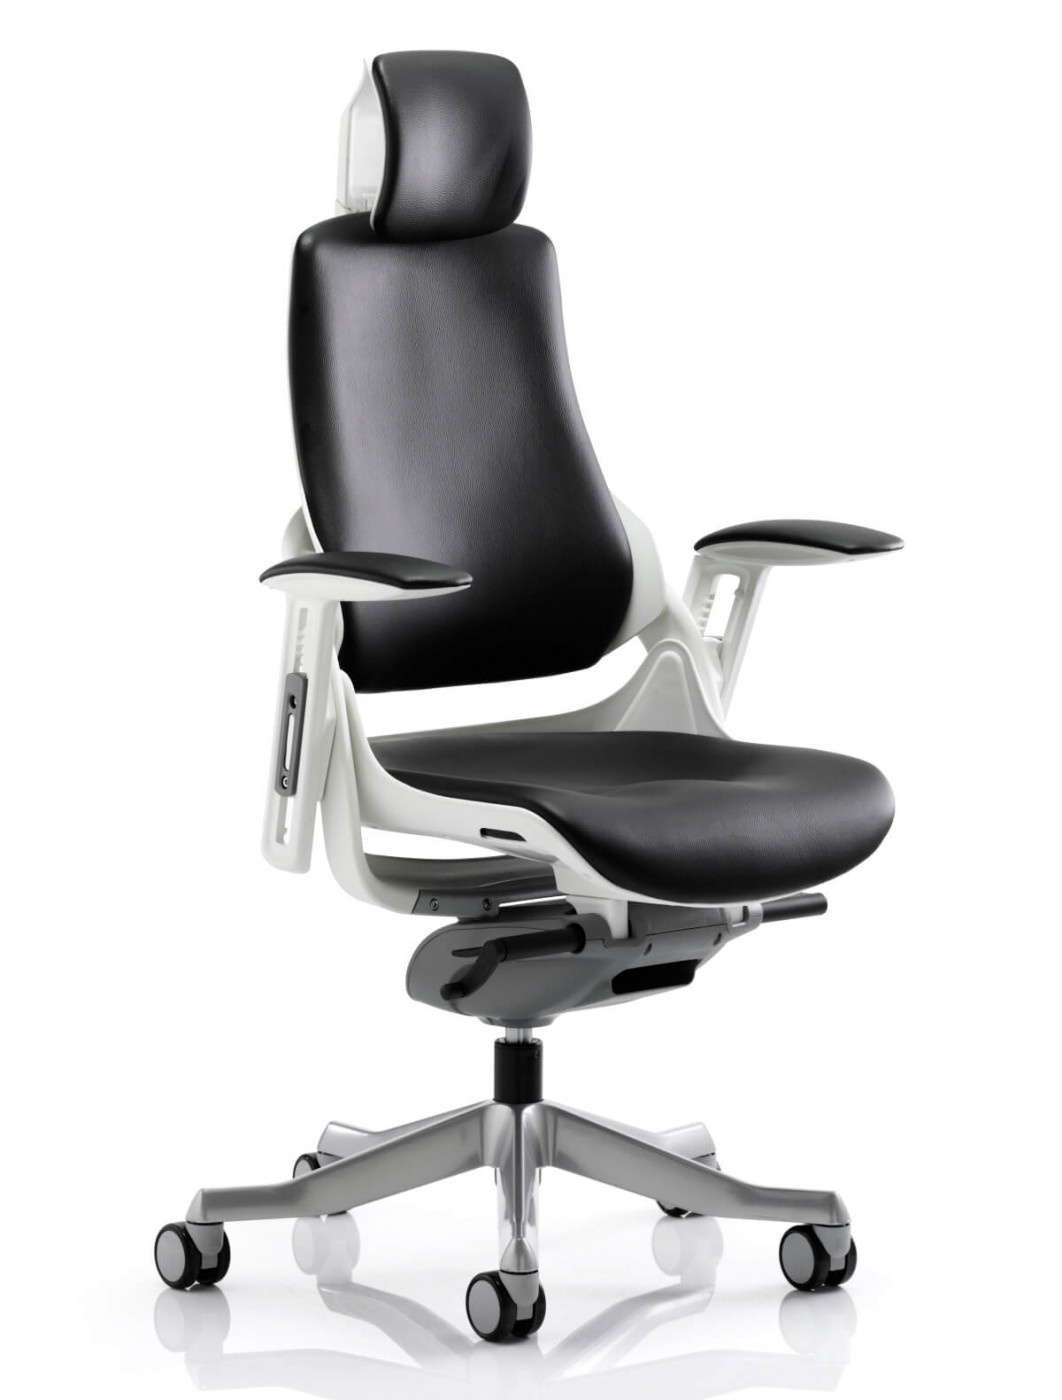 Zure Executive Leather Office Chair With Headrest Kc0166